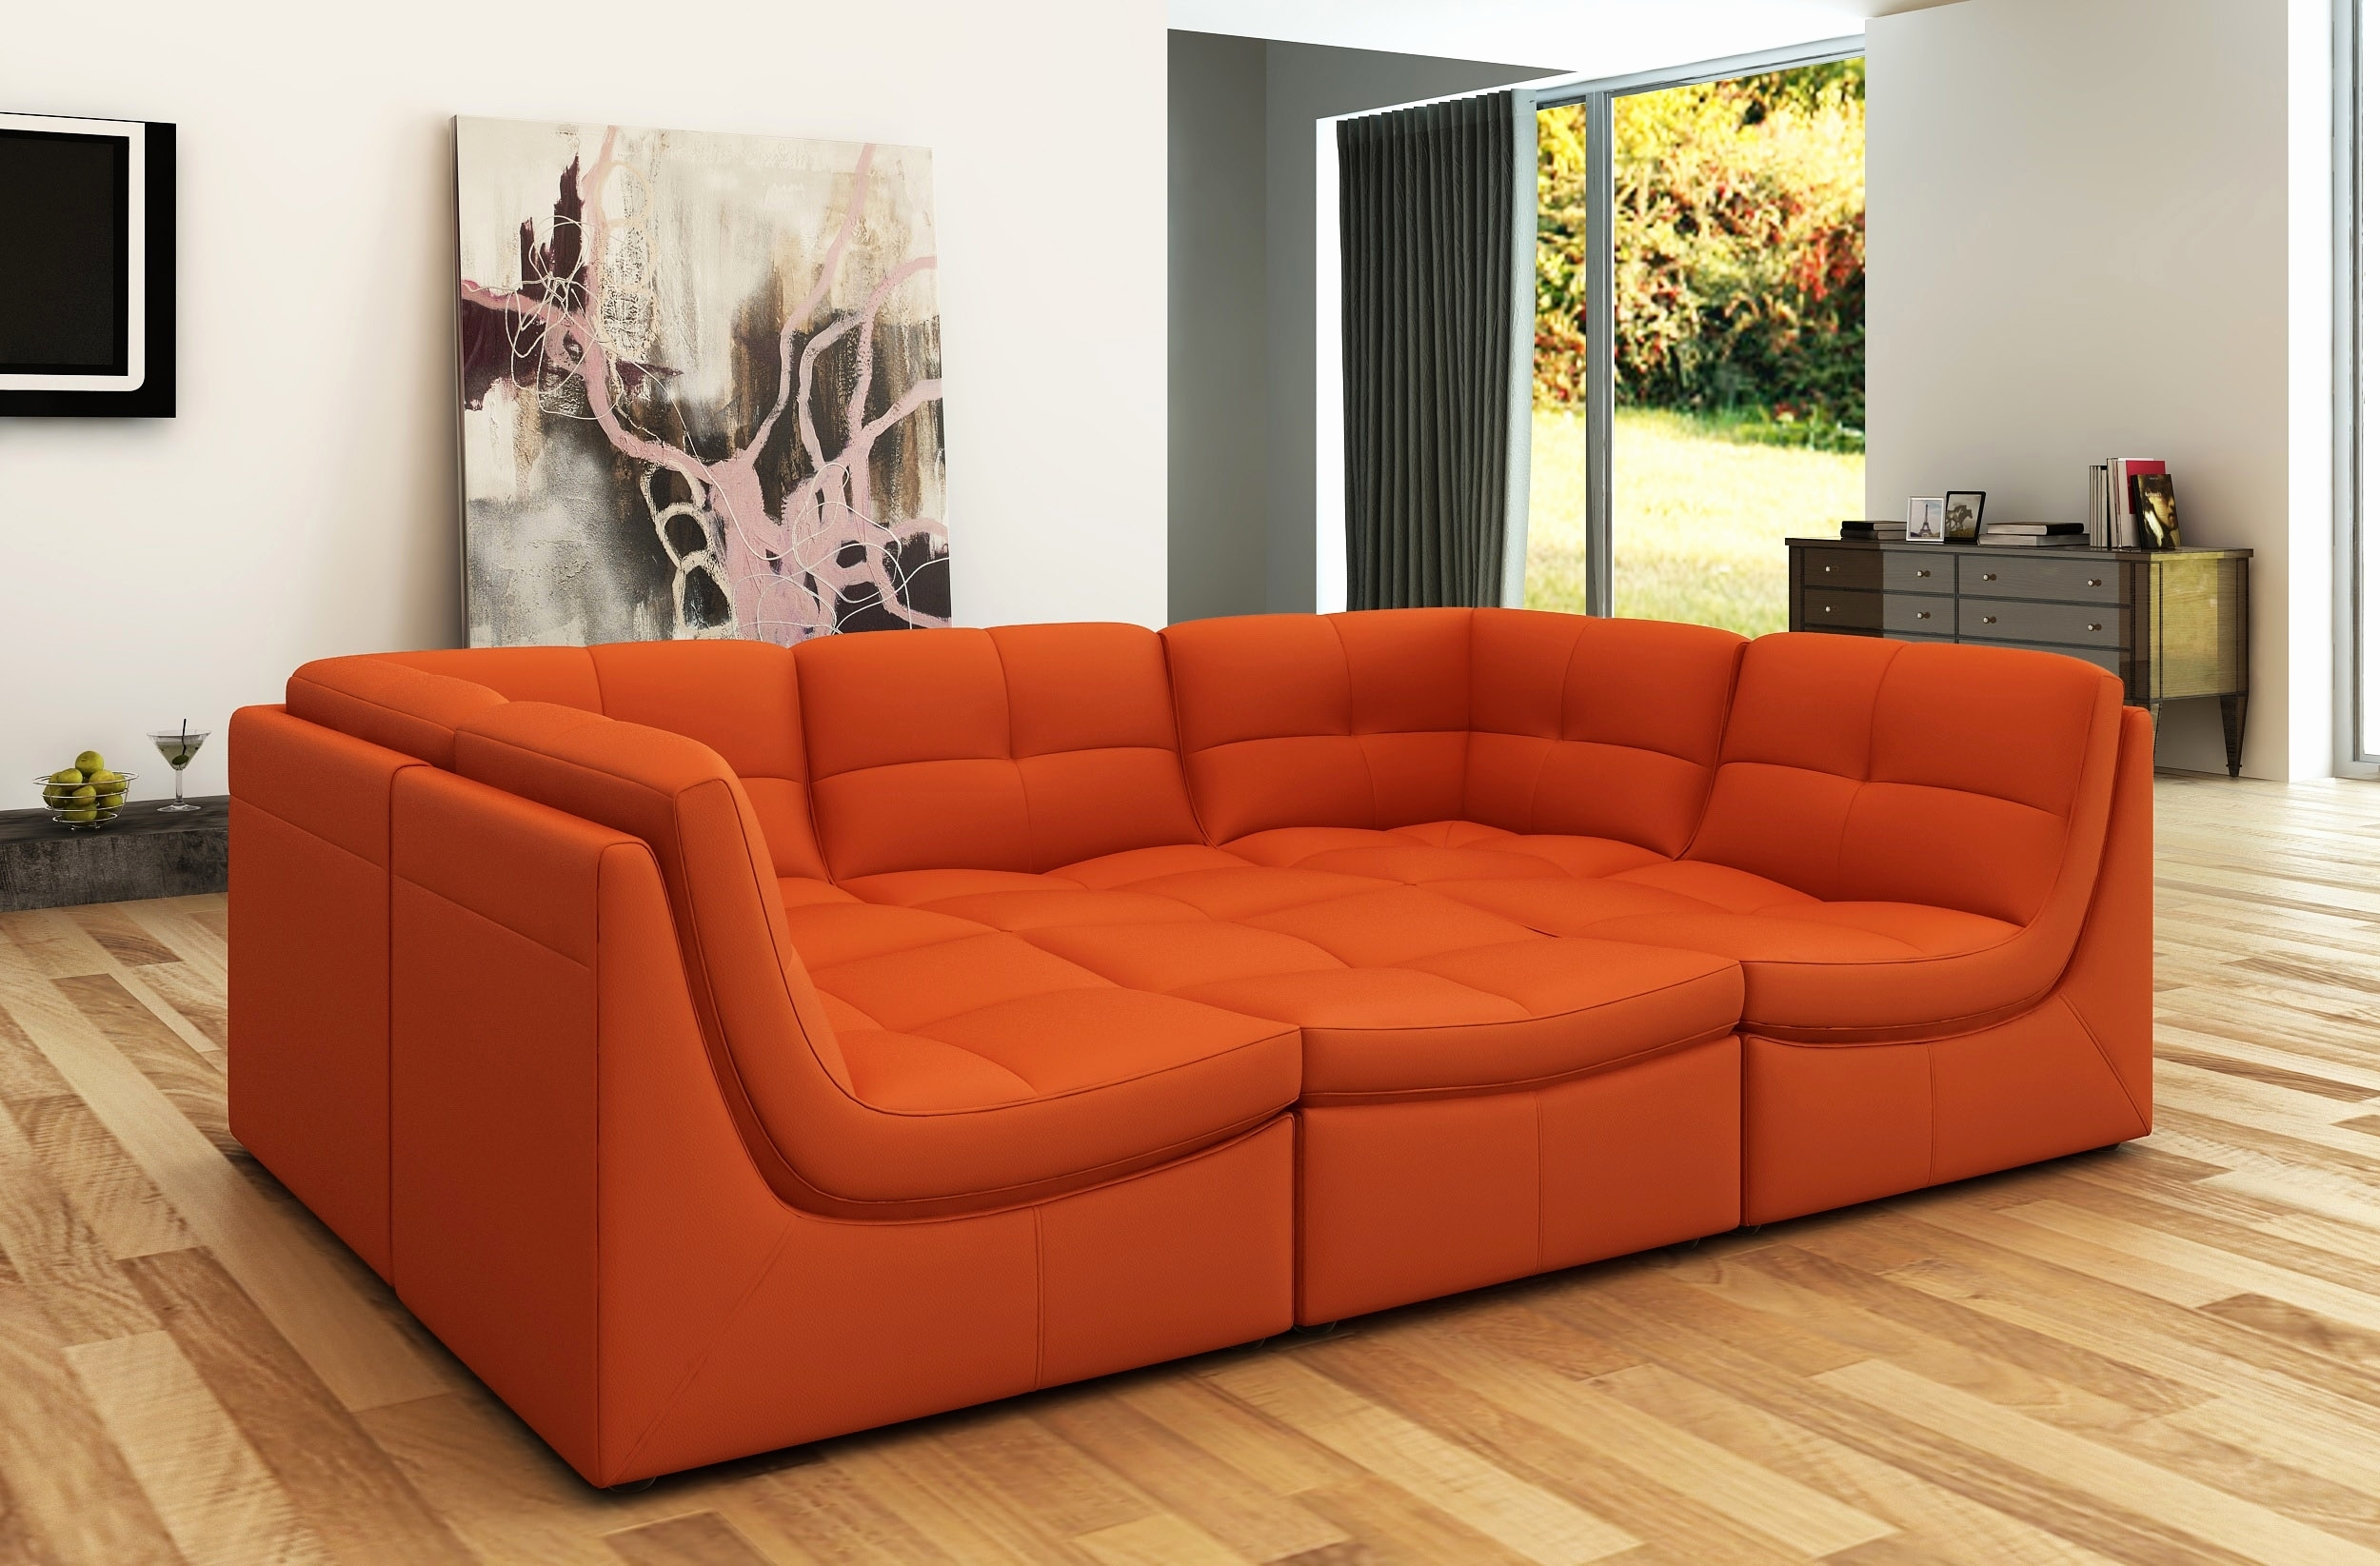 Best Leather Modular Couch 2018 – Couches And Sofas Ideas Within Des Moines Ia Sectional Sofas (Image 3 of 10)